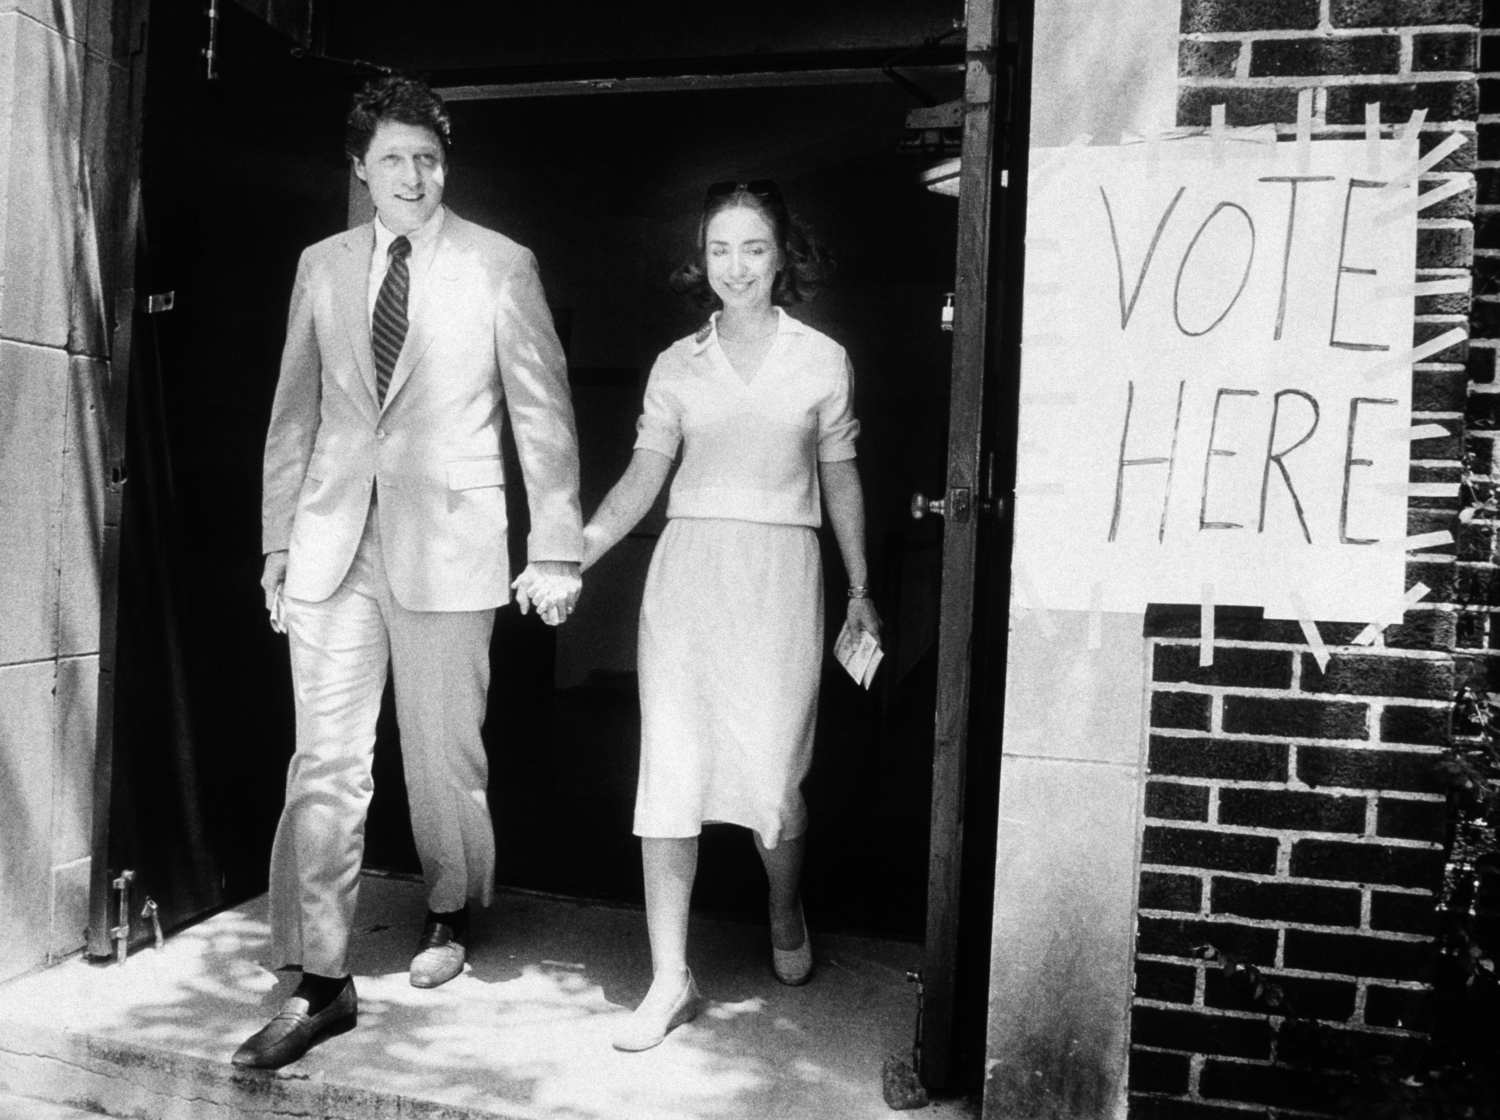 A young Arkansas couple leave the polling station having voted in the 1982 gubernatorial election.